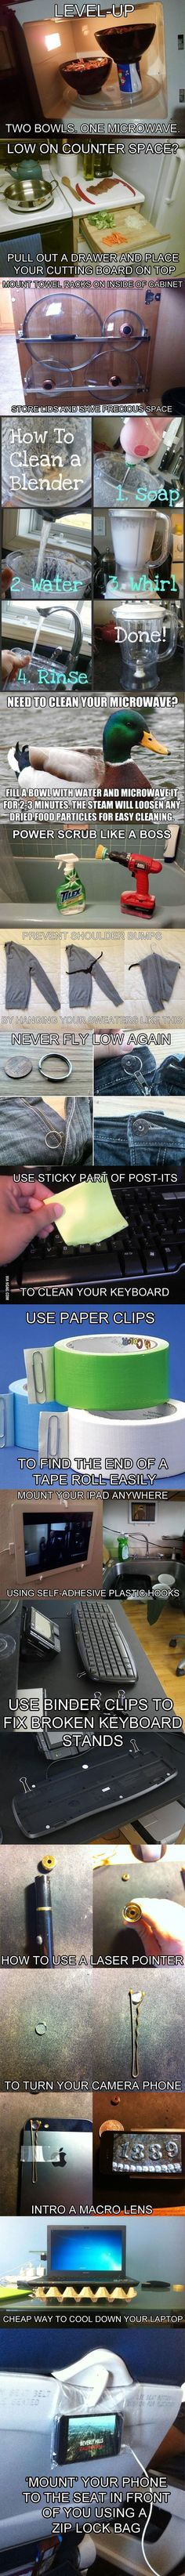 Clever Life Hacks to Simplify Your World: